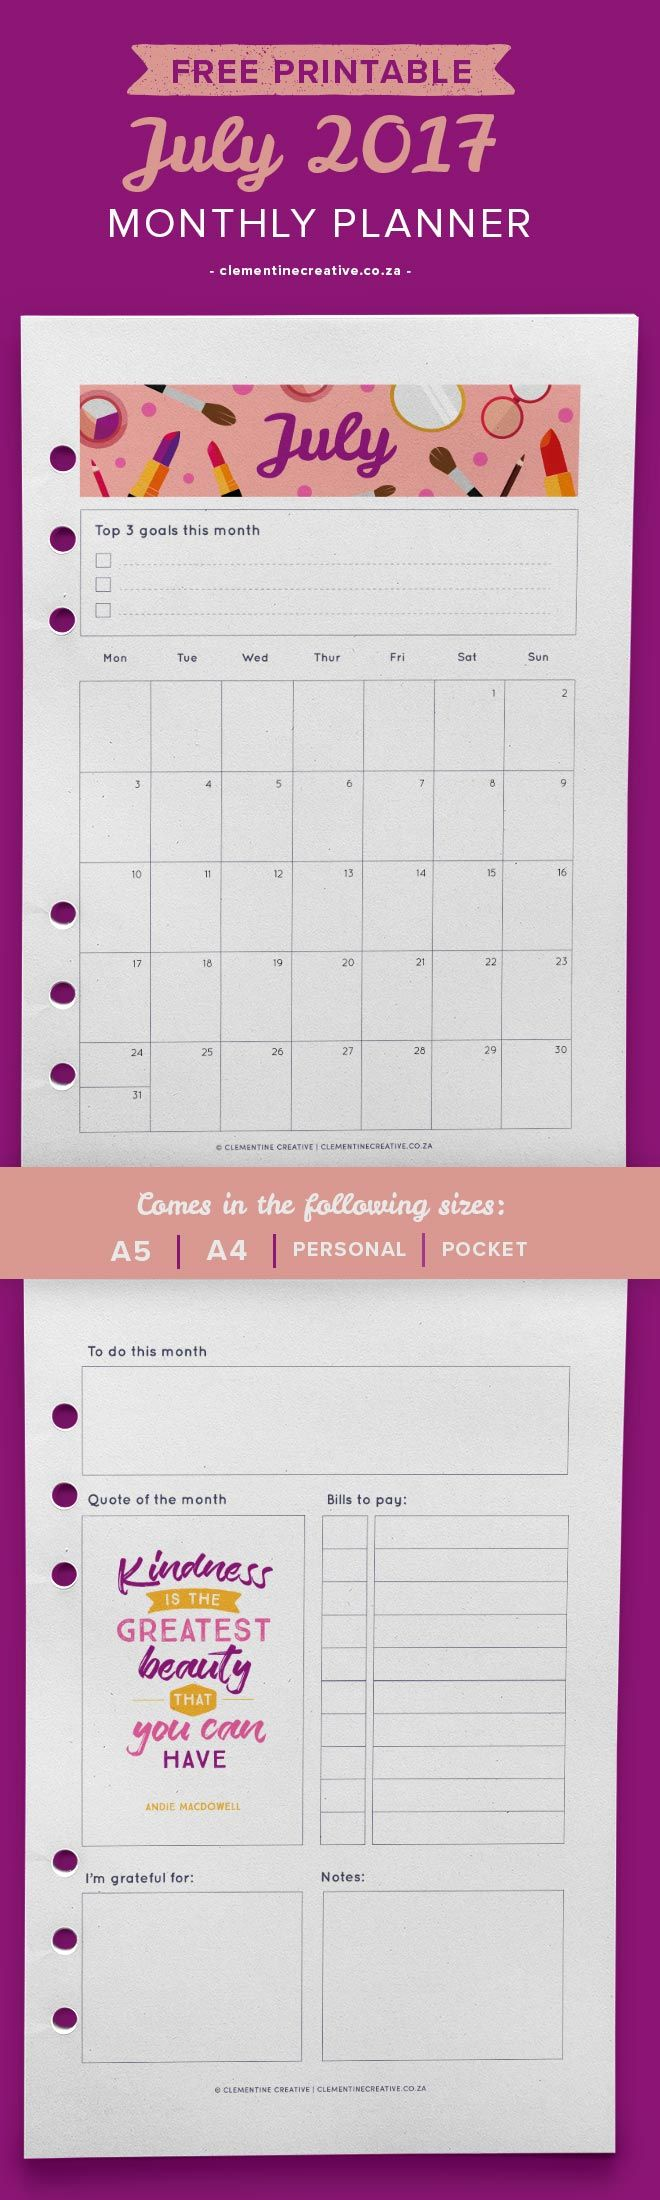 Download this June 2017 monthly planner template for free! It fits a variety of planners and folders. Subscribe to receive a new planner page every month in your inbox!